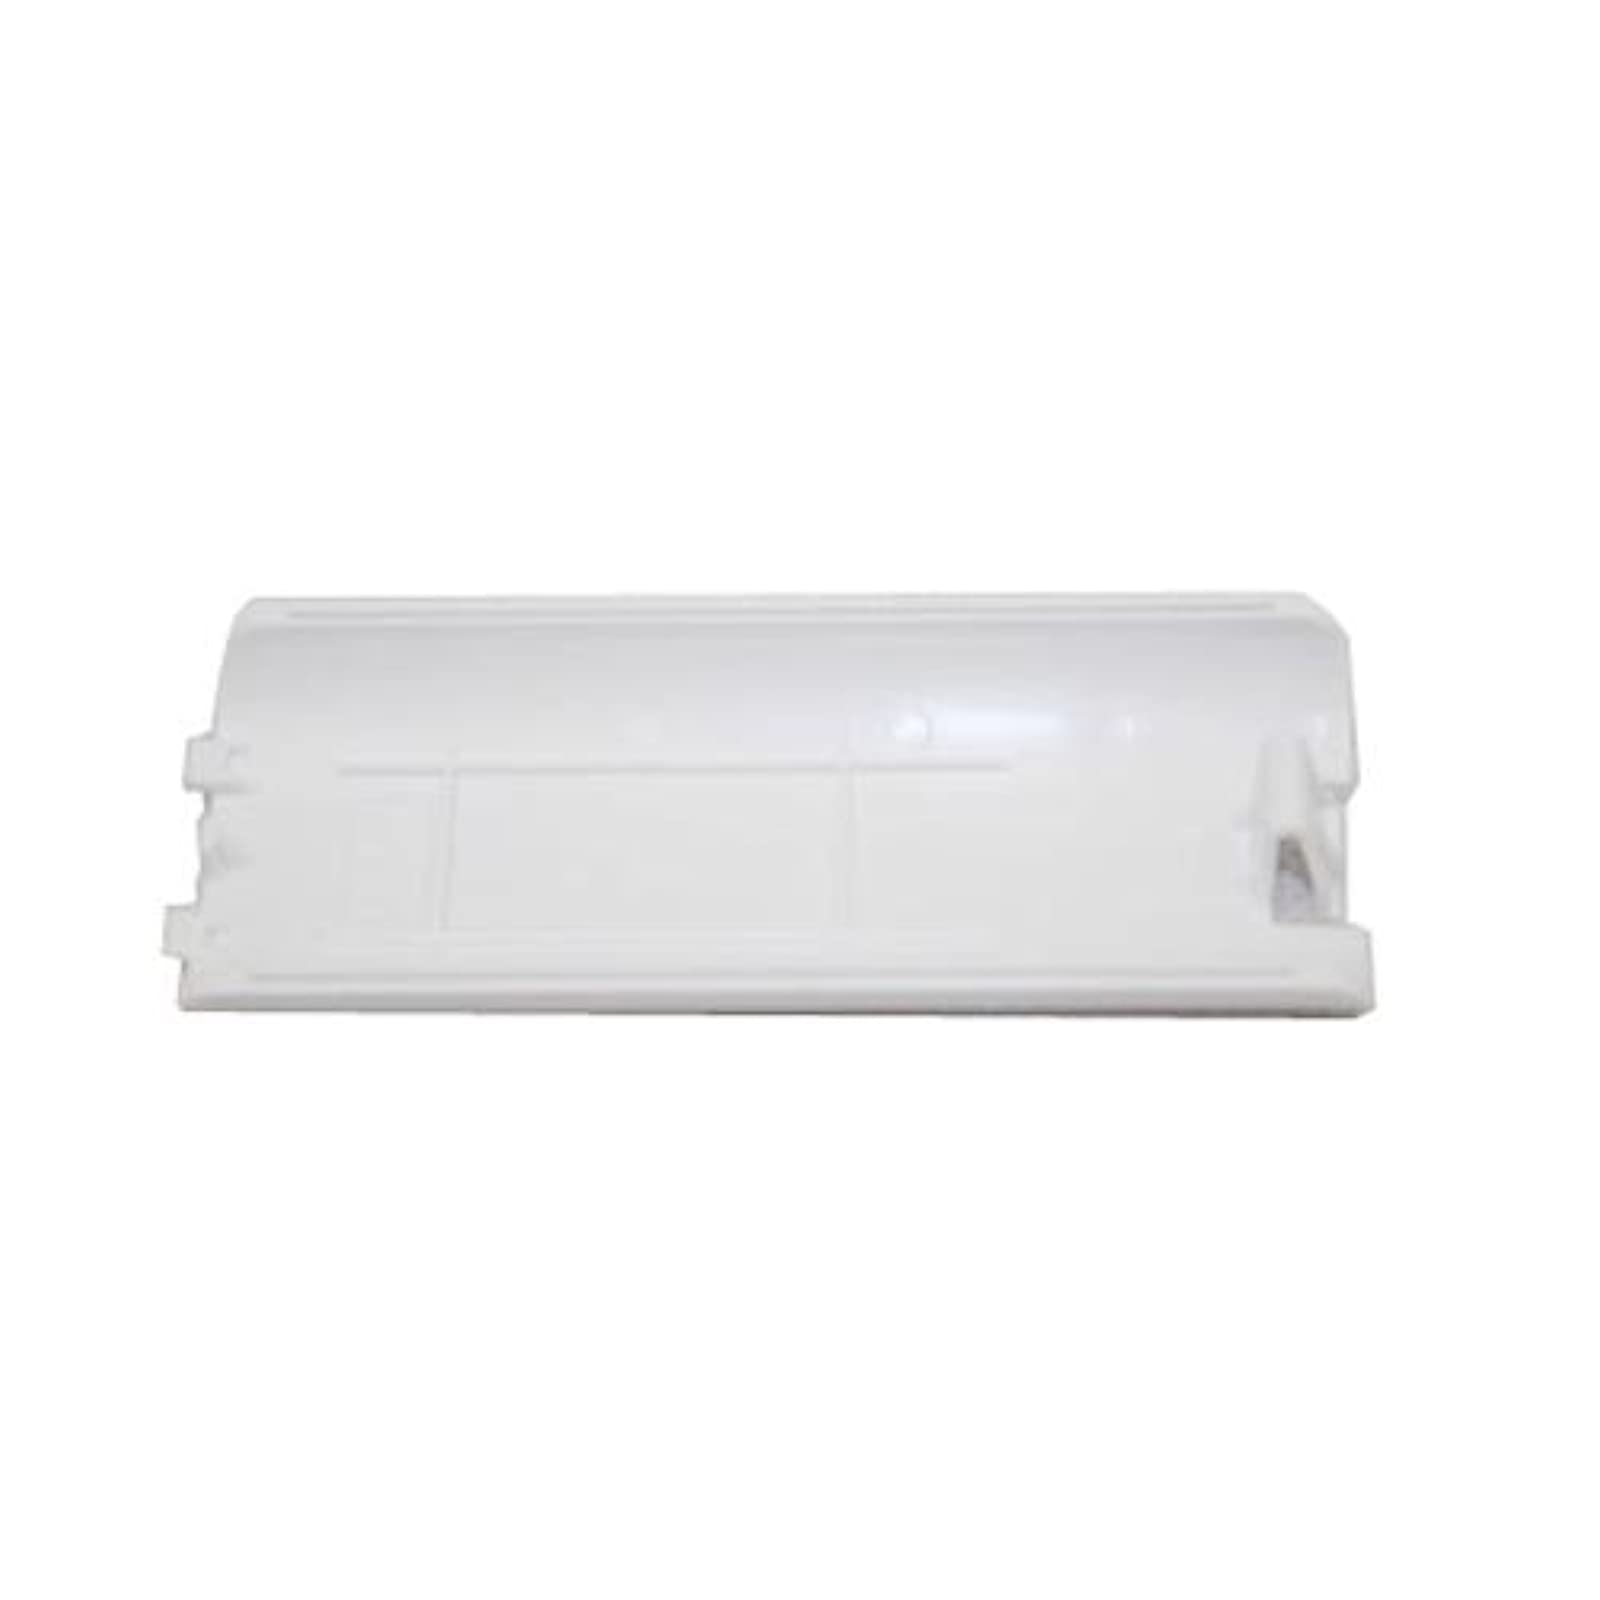 Dual Pack 2X Pieces White Remote Battery Cover Protective For Wii